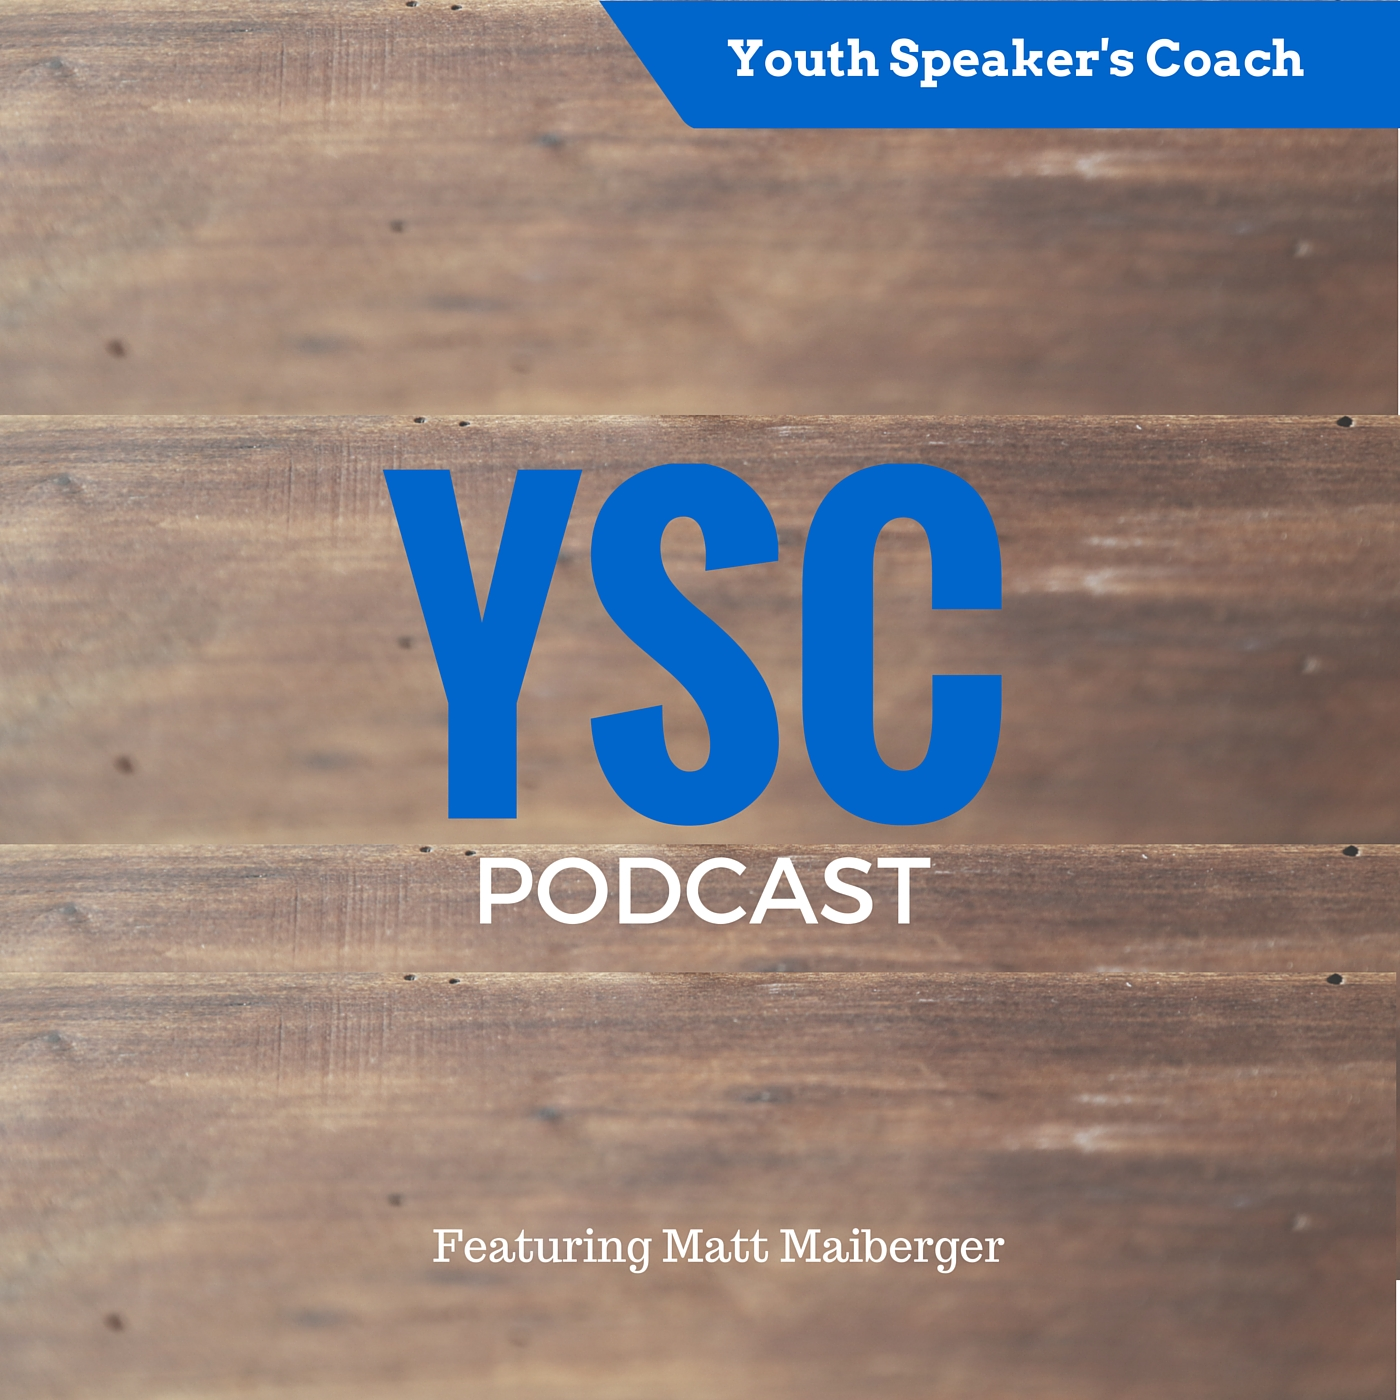 Youth Speaker's Coach Podcast